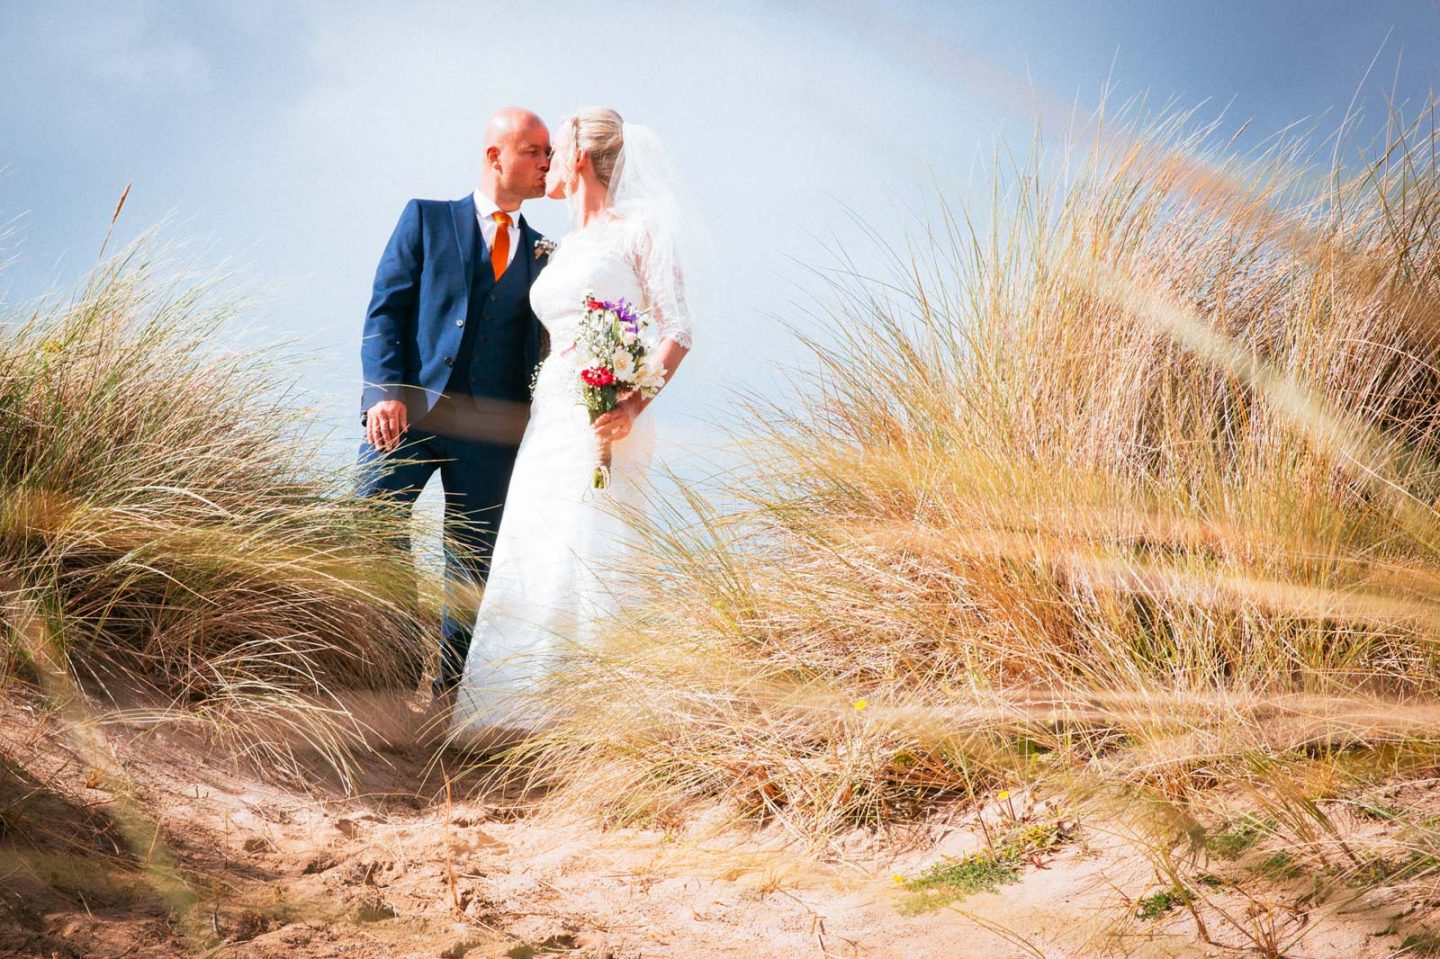 A bride and groom kiss on the sand dunes at Crantock Beach in Cornwall.